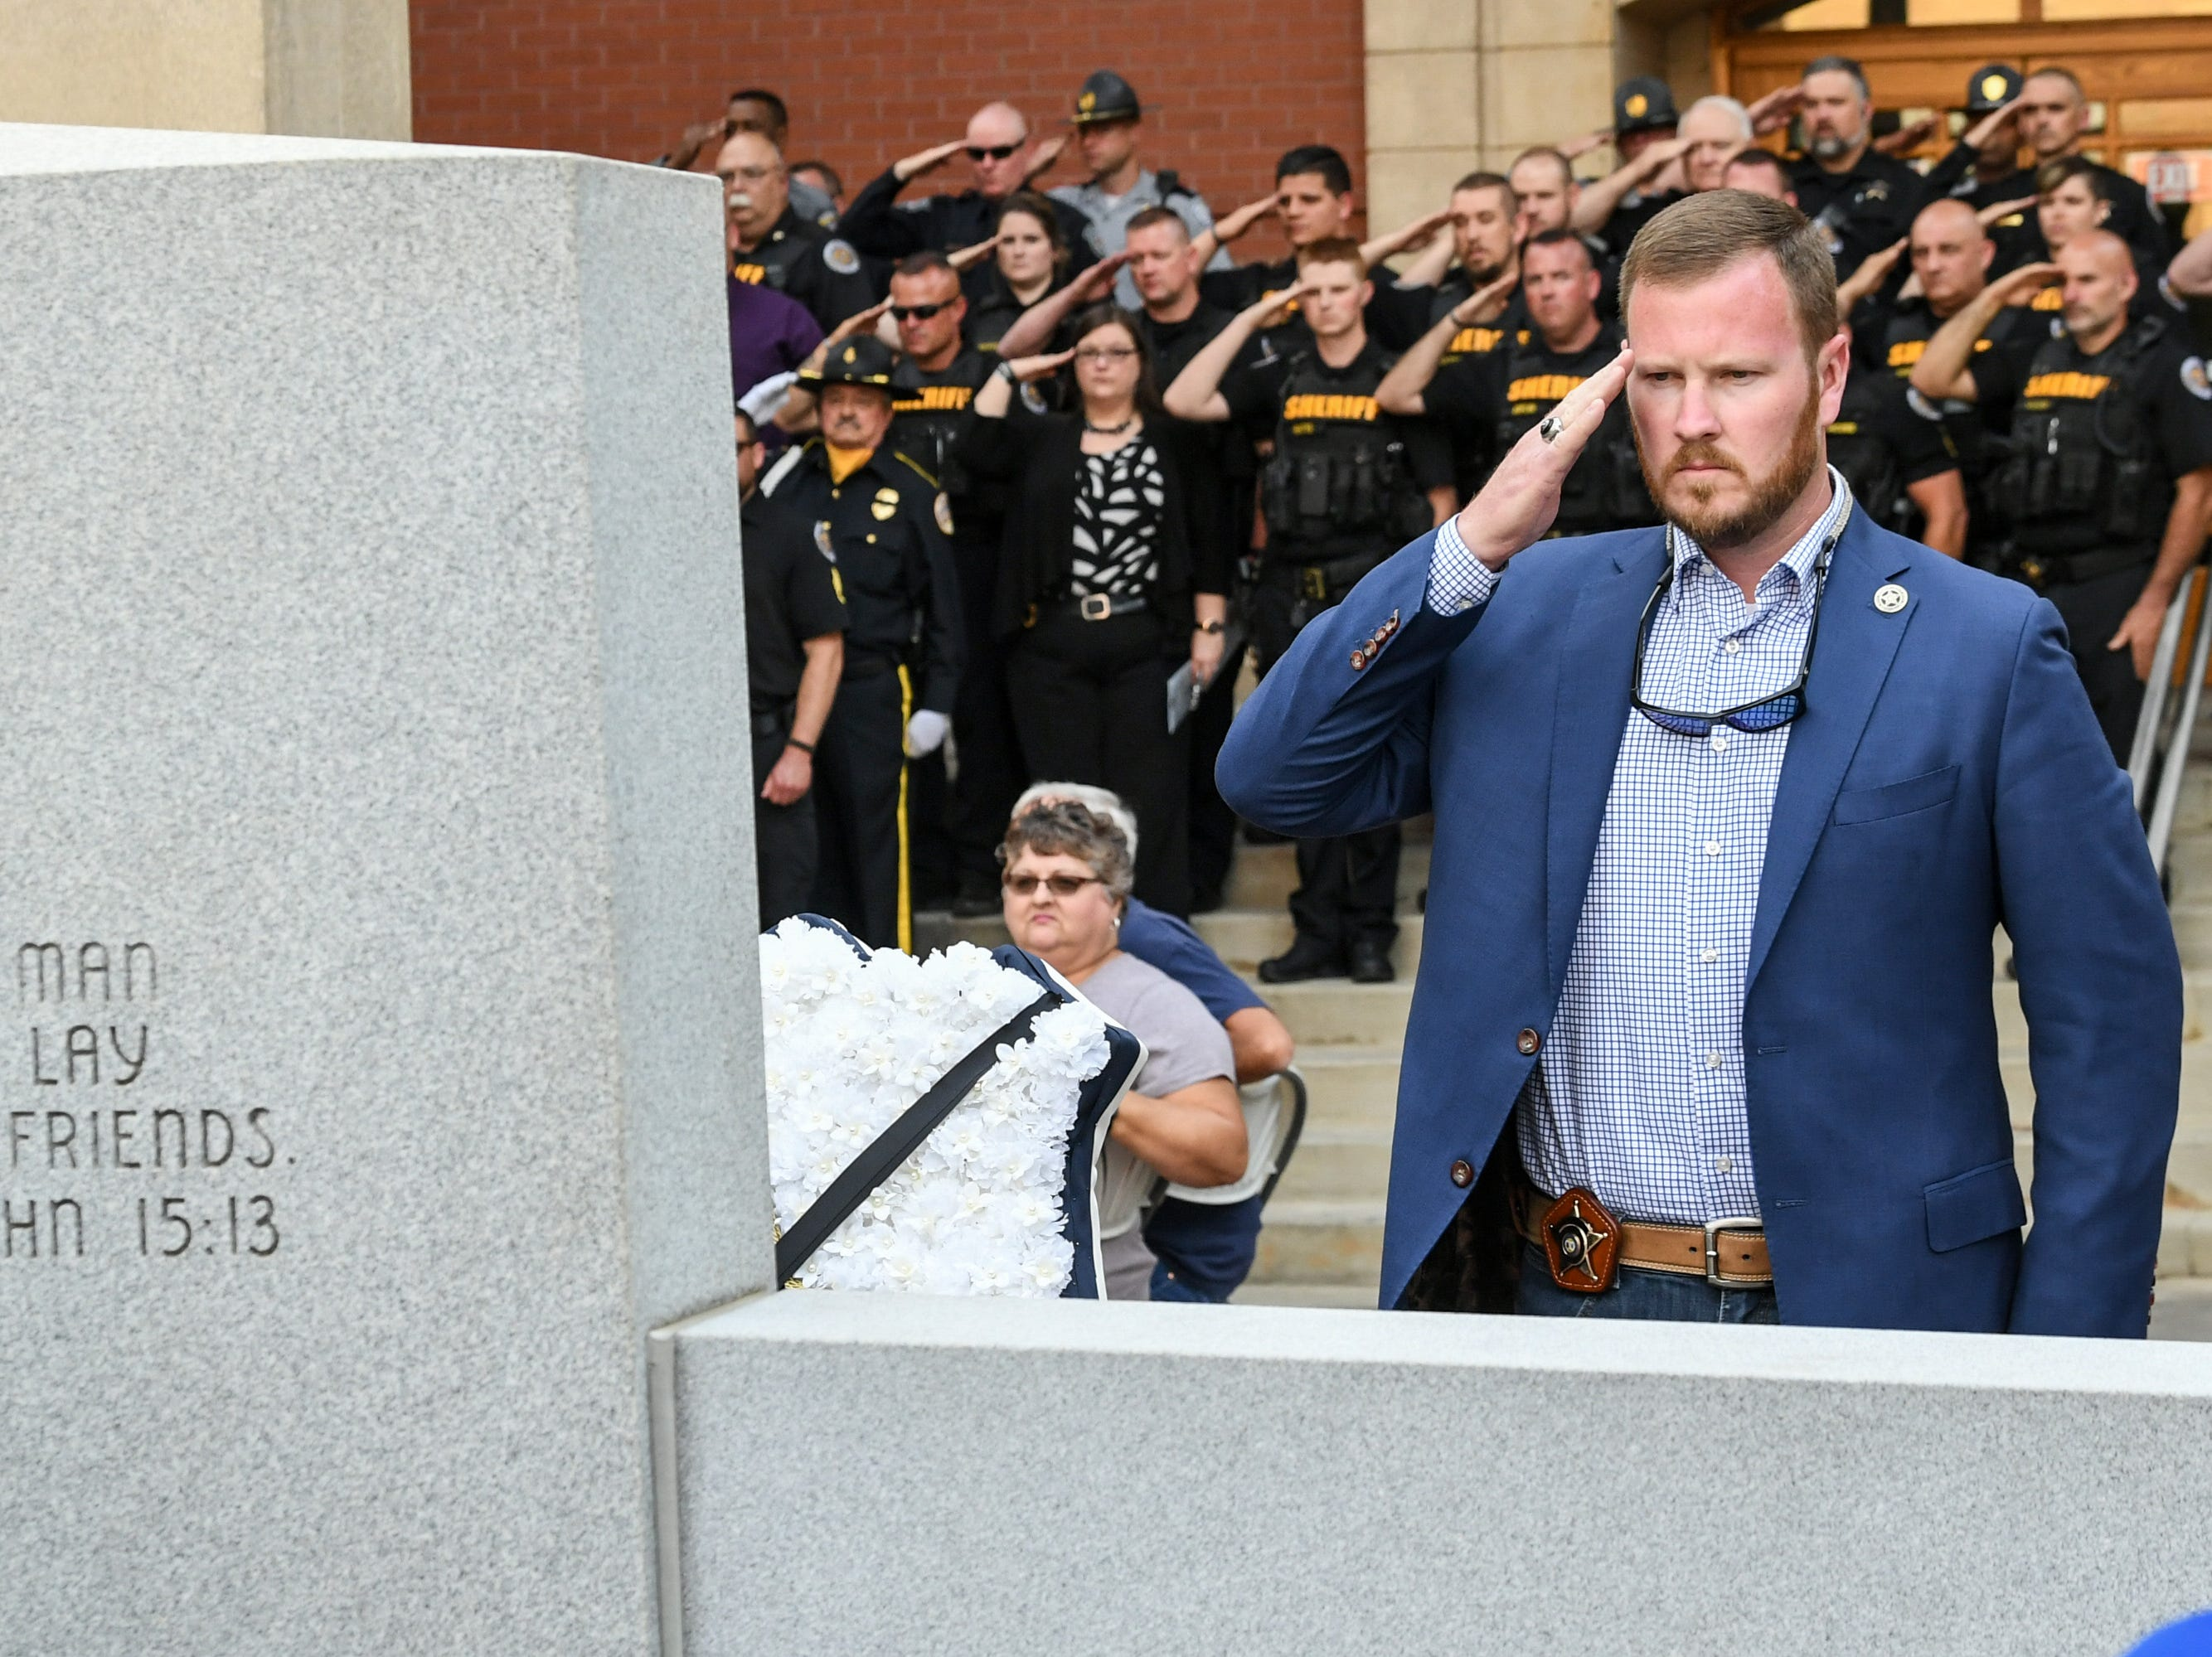 Sheriff Chad McBride and officers salute after laying a wreath with city Chief of Police Jim Stewart at the courthouse memorial, during the 2019 Peace Officer Memorial Service Wednesday May 15, 2019. People attended to help honor the lives of officers lost in the line of duty.